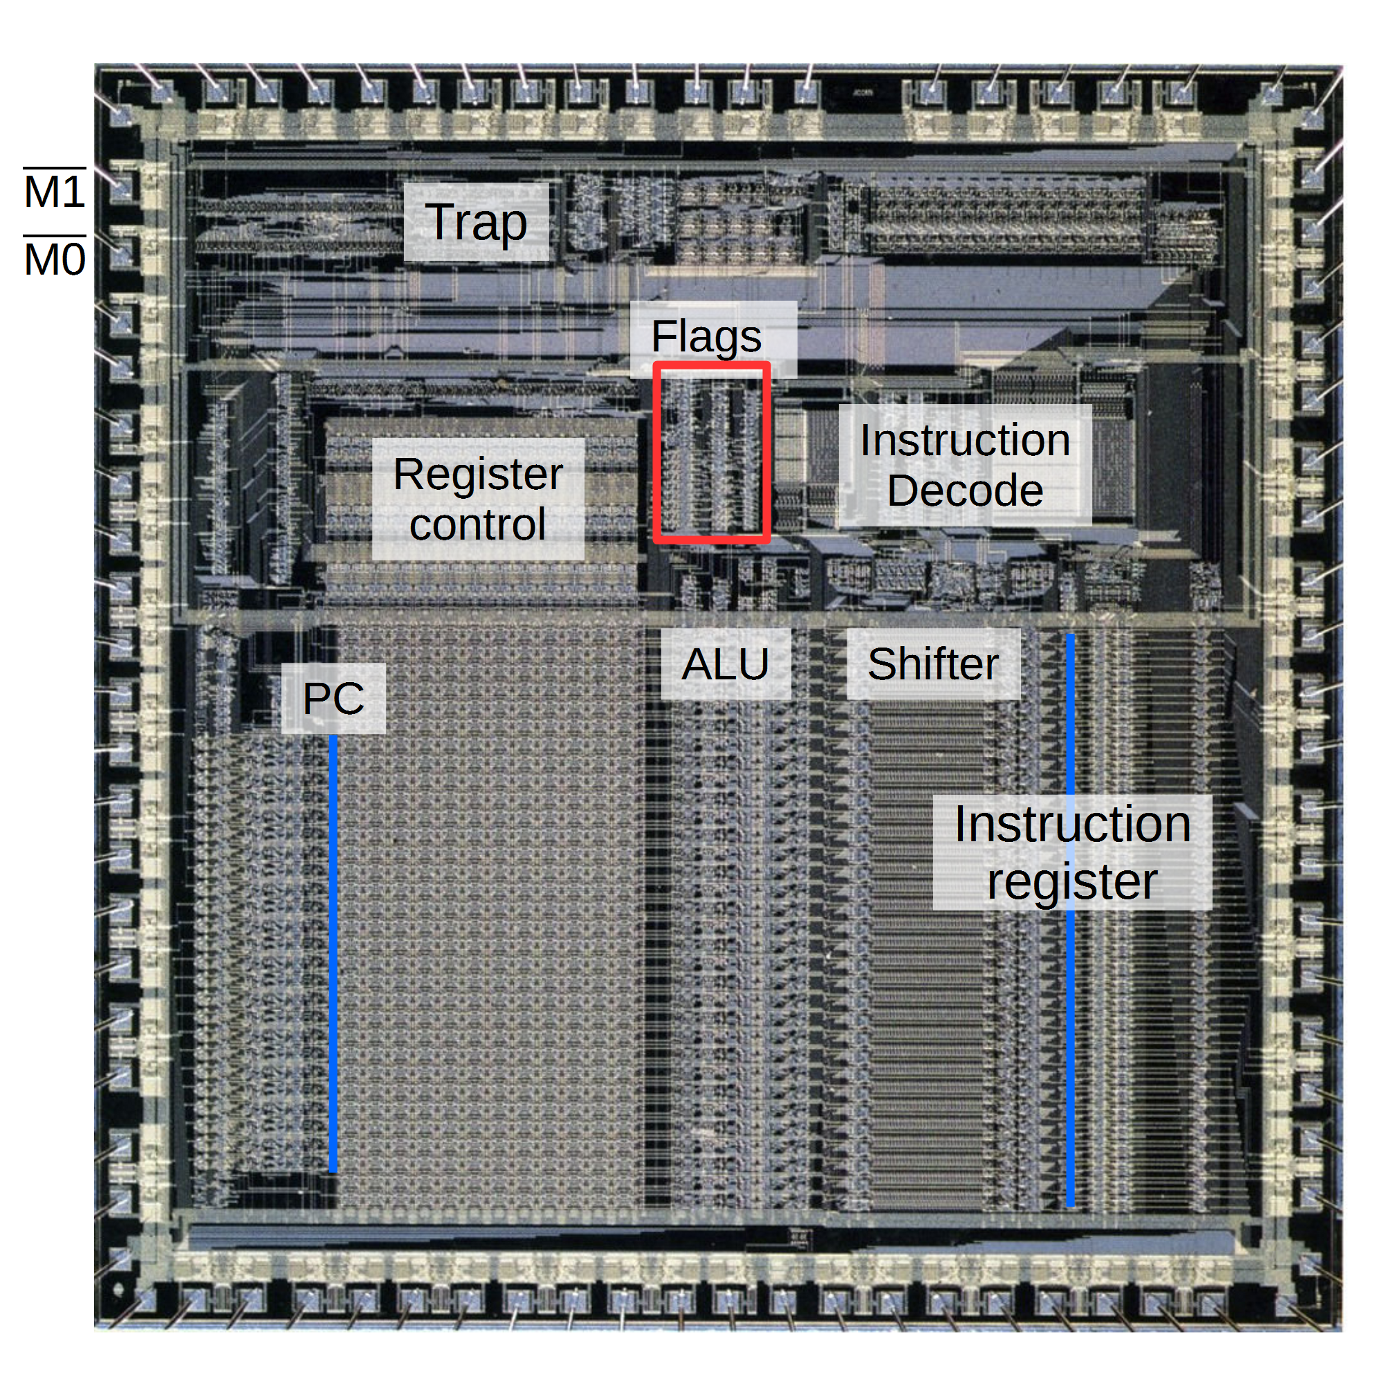 Ken Shirriffs Blog February 2016 Charge Amplifier Circuit Free Electronic Circuits 8085 Projects The Flag Circuitry In Arm1 Processor Interacts With Many Other Components Of Chip